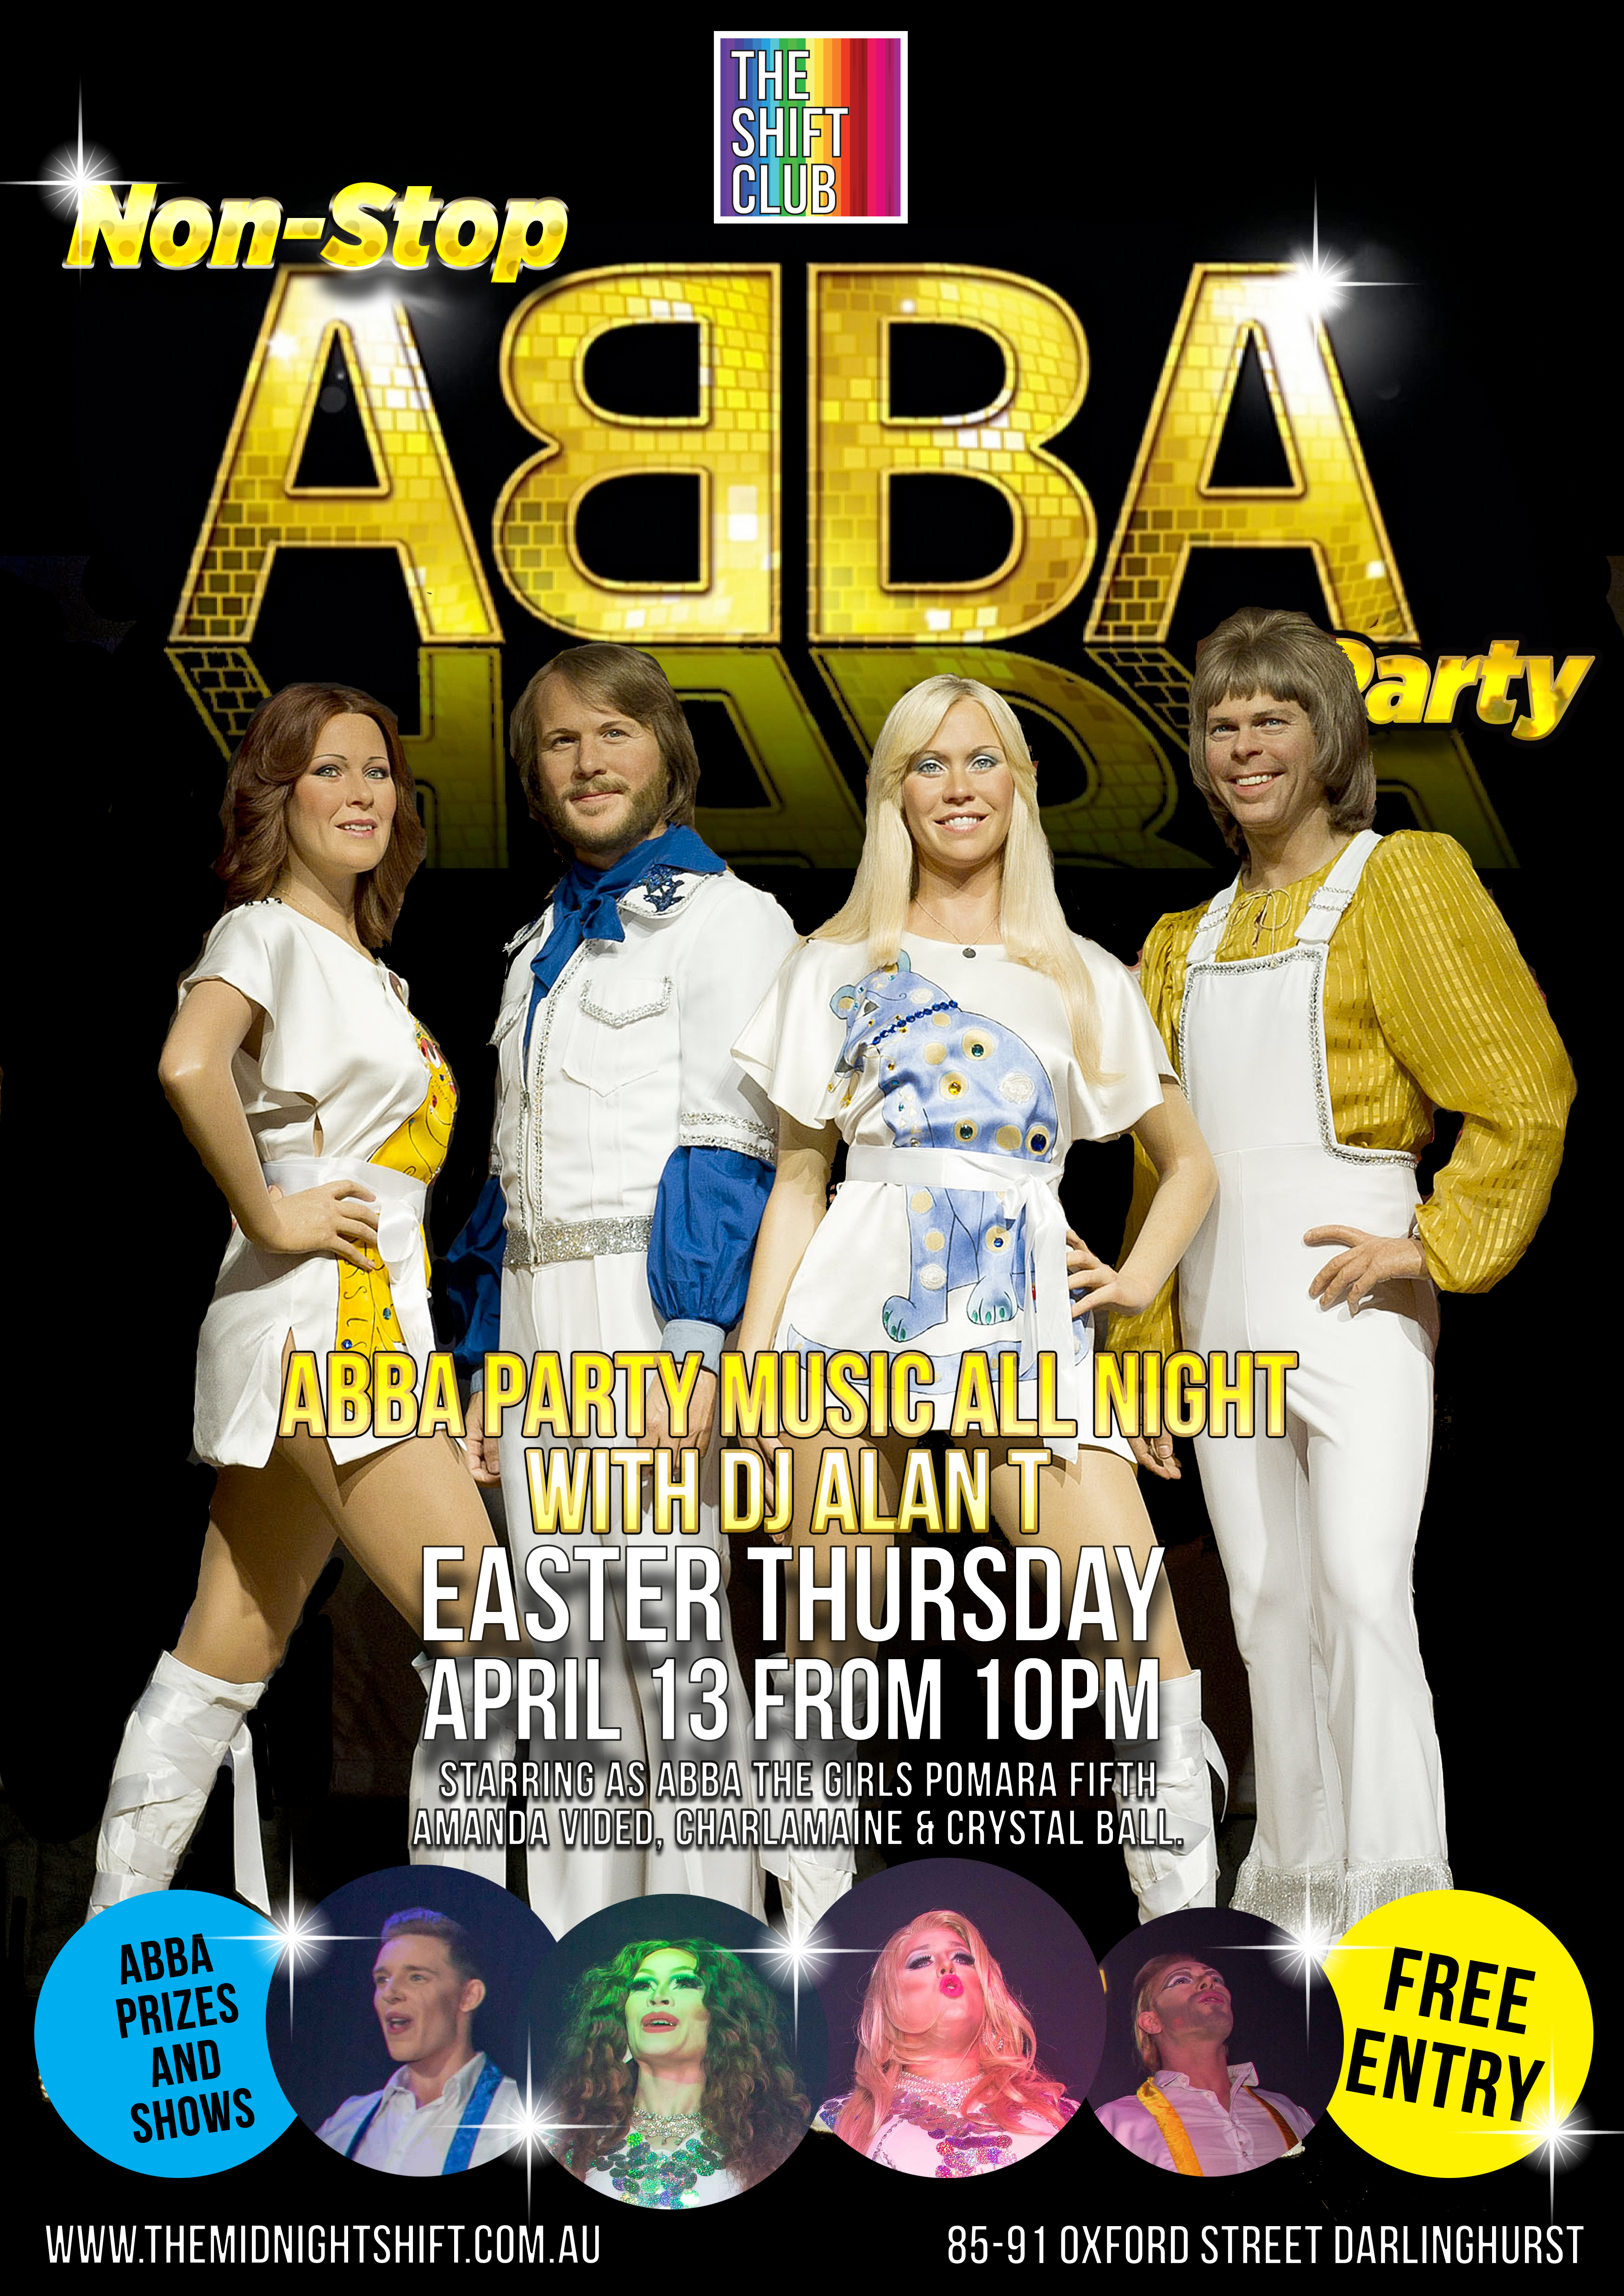 abba_party_poster_cast_APRIL17